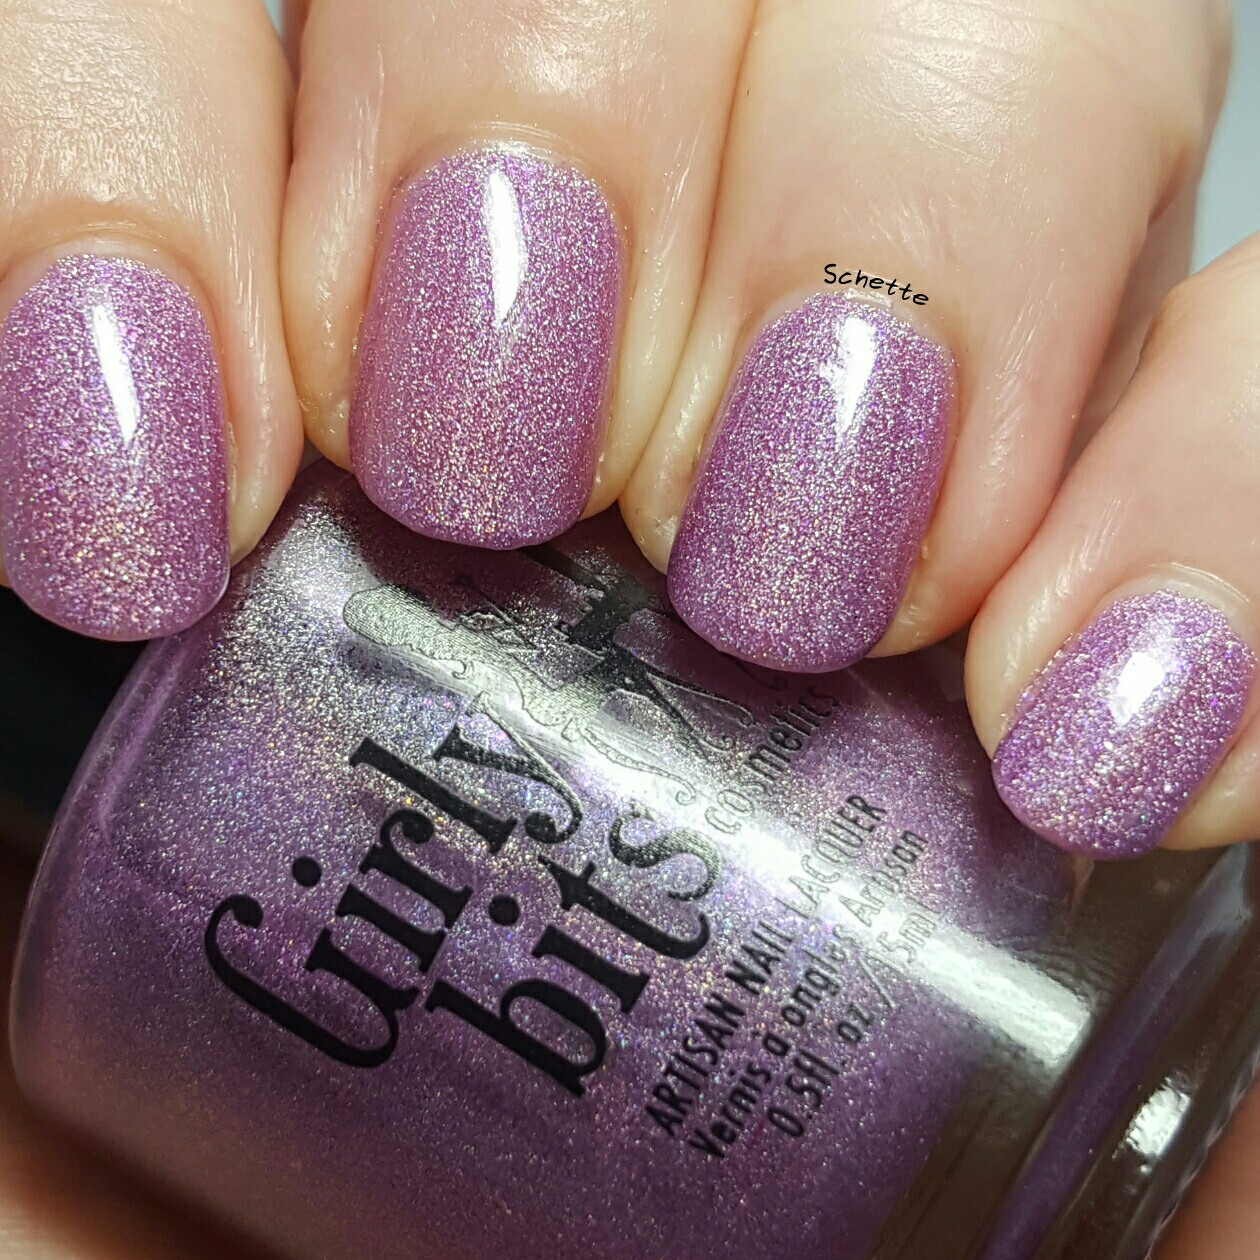 Girly Bits - Bird is the word